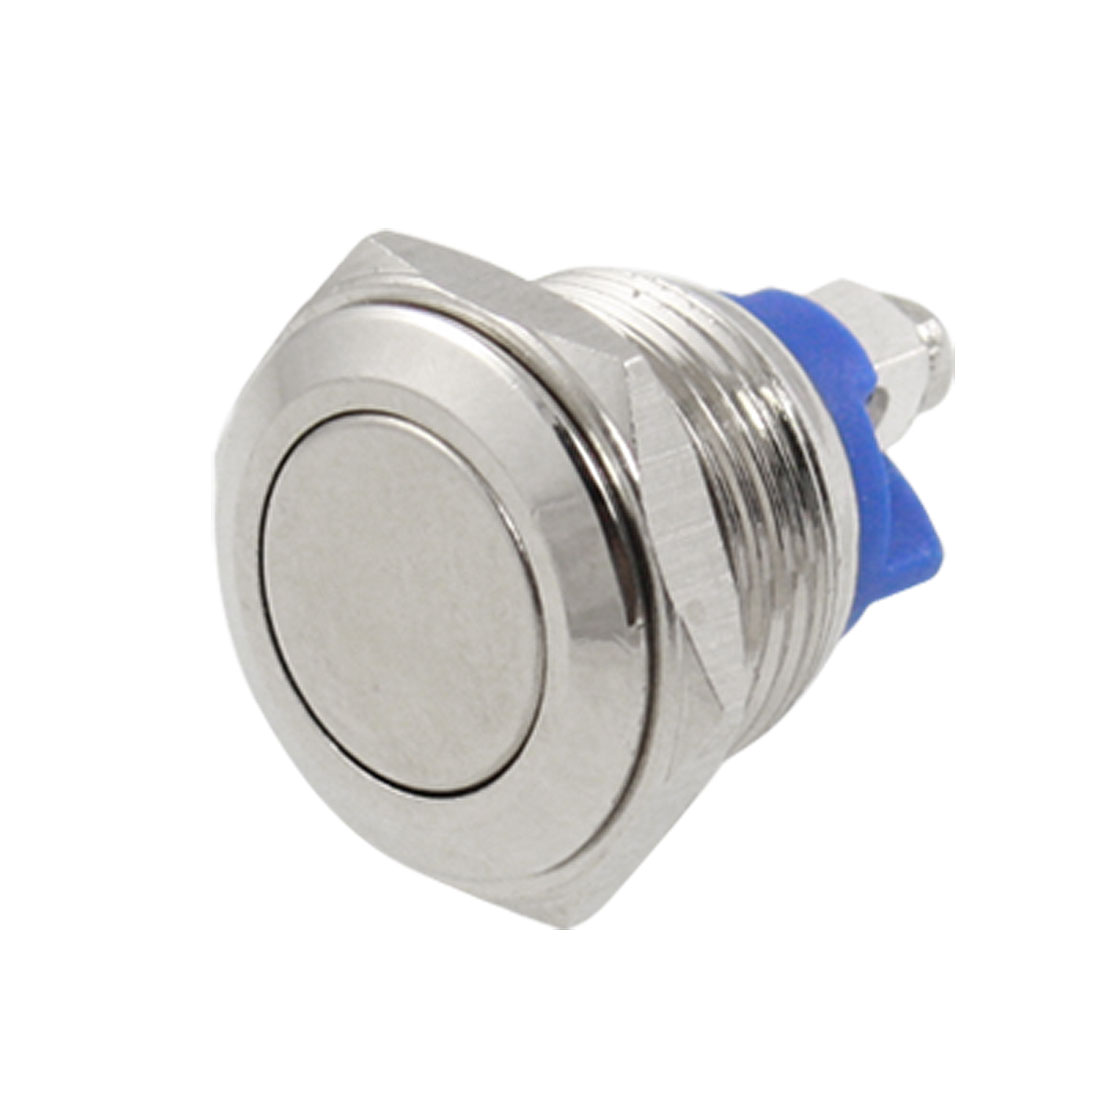 DC 36V 2A Off-(On) NO 16mm Screw Metal Flat Momentary Push Button Switch